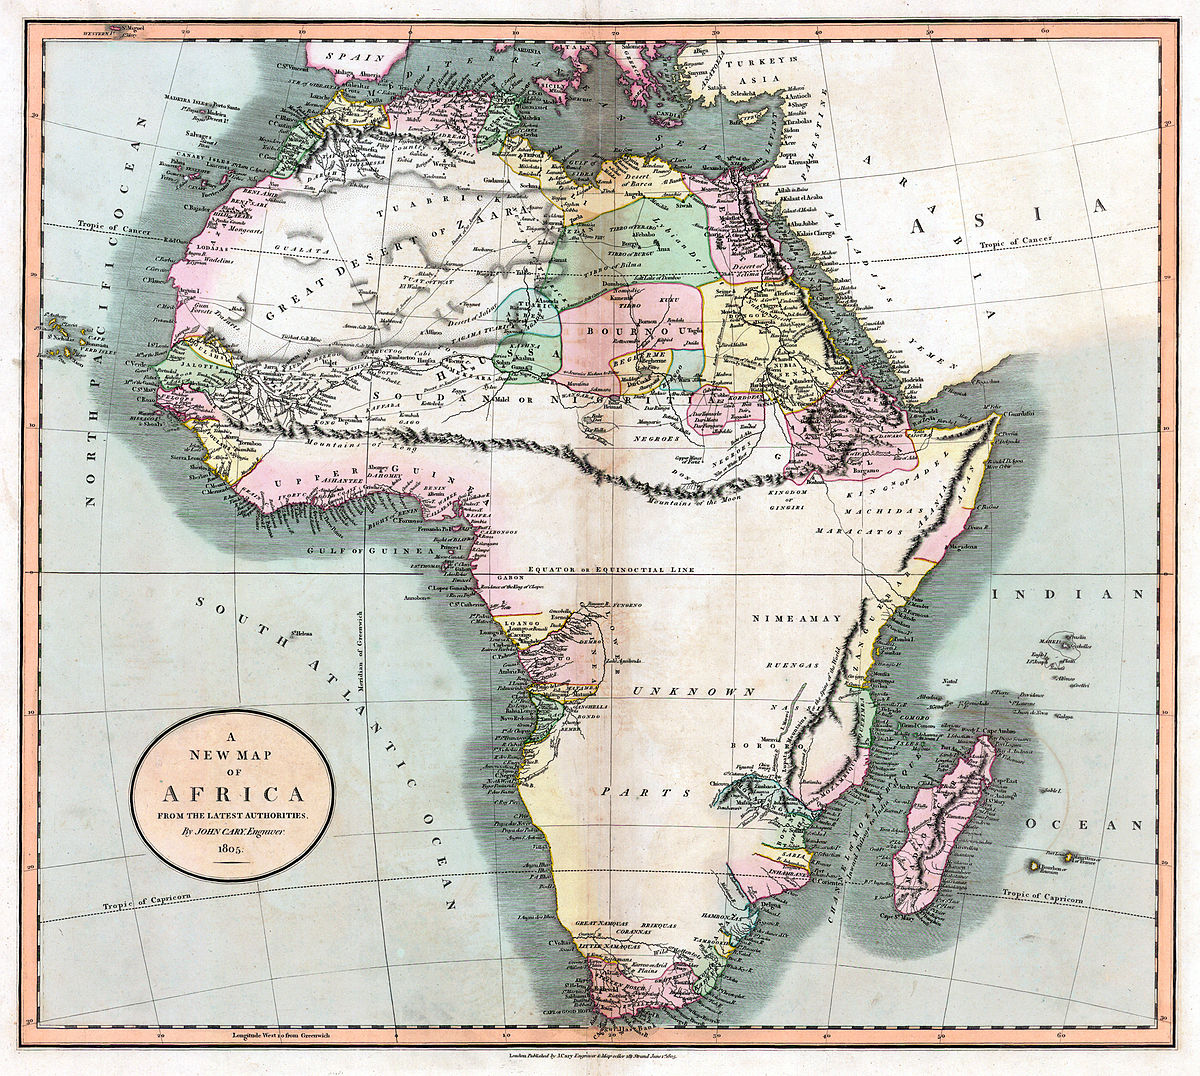 19th Century Africa Map.Mountains Of Kong Wikipedia